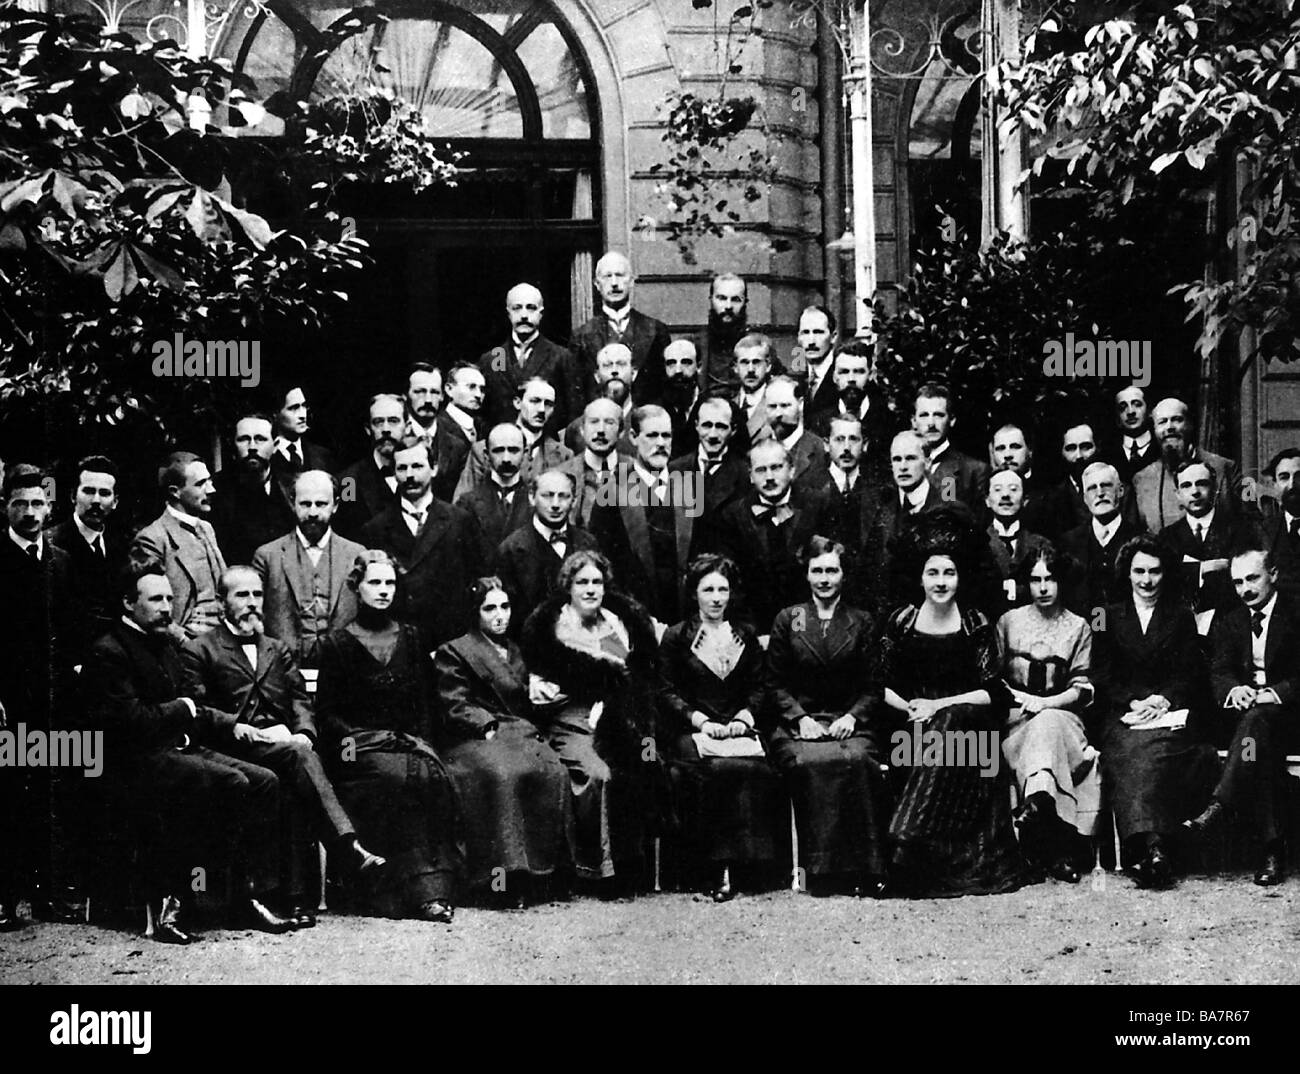 Freud, Sigmund, 6.5.1856 - 23.9.1939, Austrian physician, founder of the psychoanalytic school of psychology, second - Stock Image